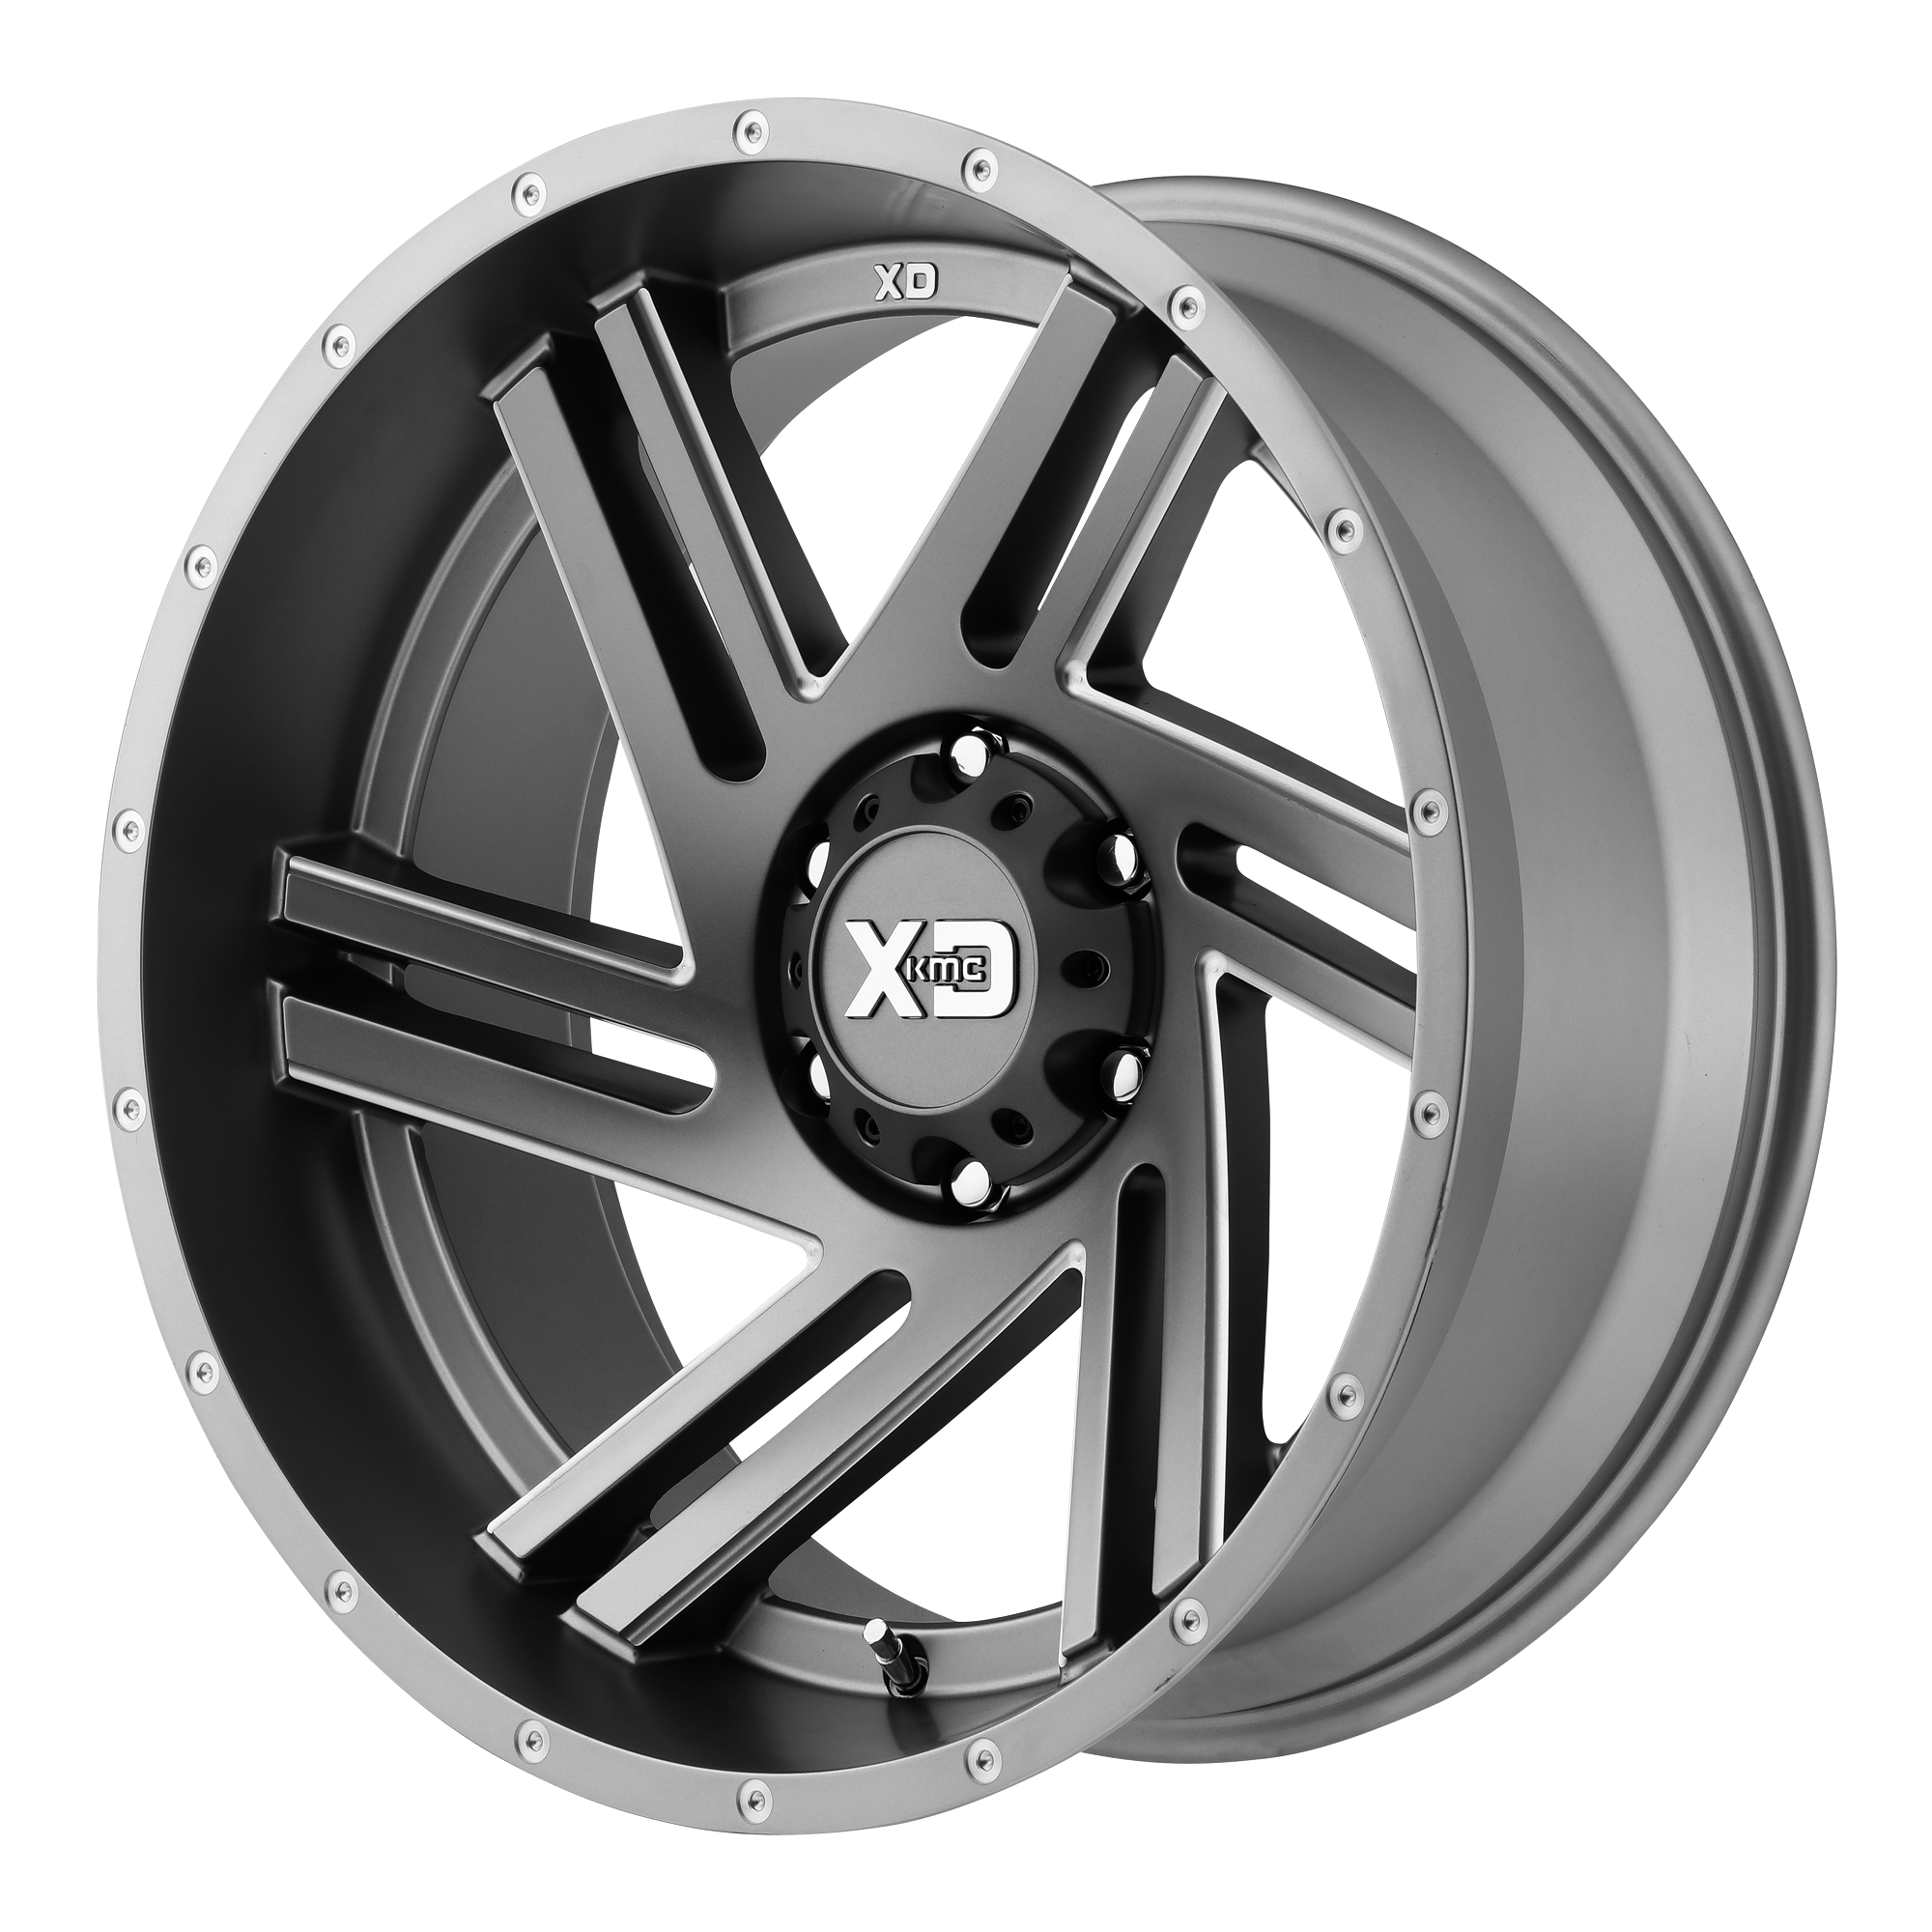 XD Series XD835 Wheels